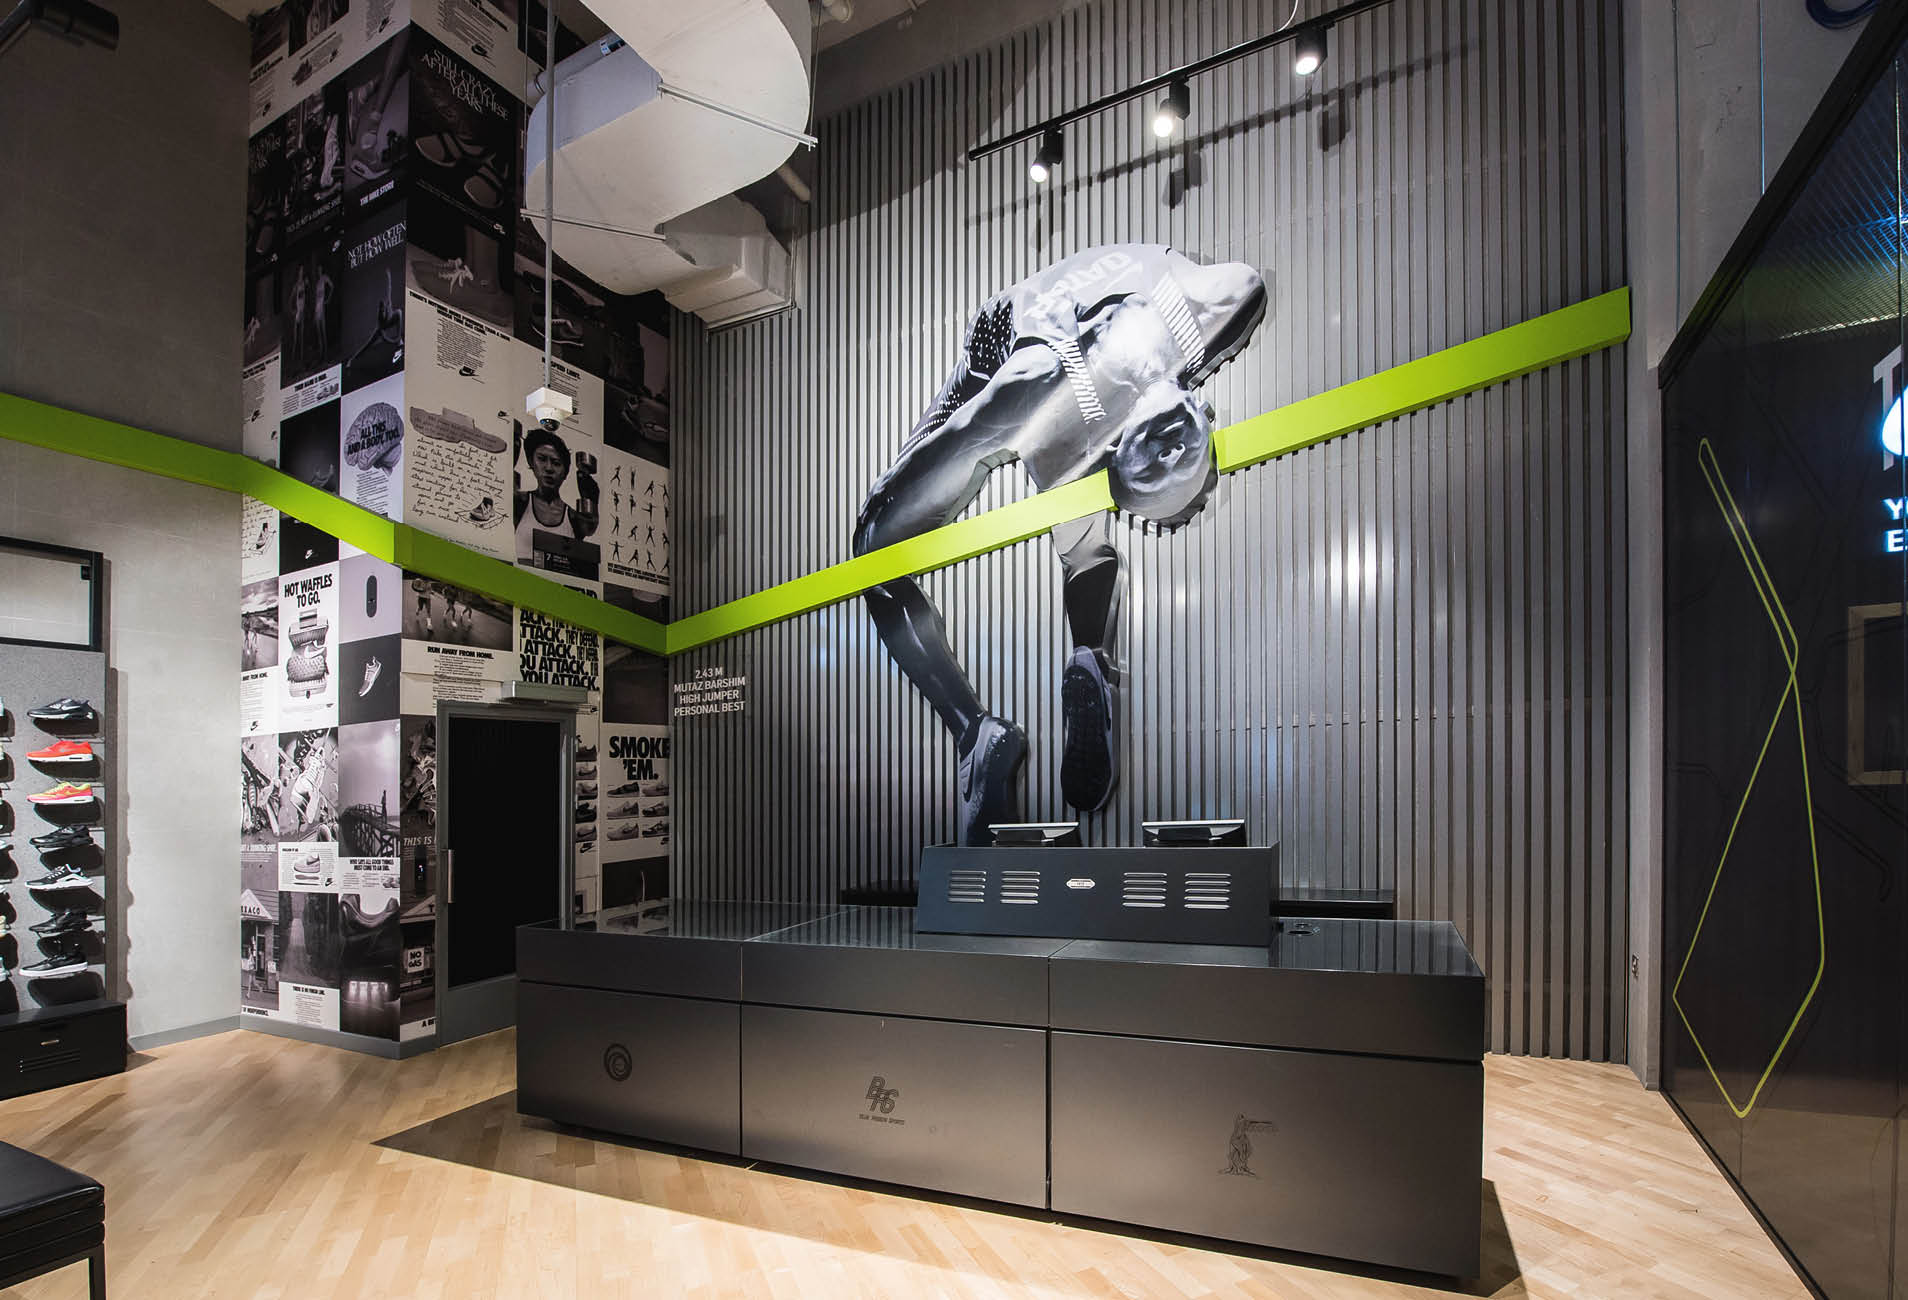 Studio and Space - Mall of Qatar, Nike